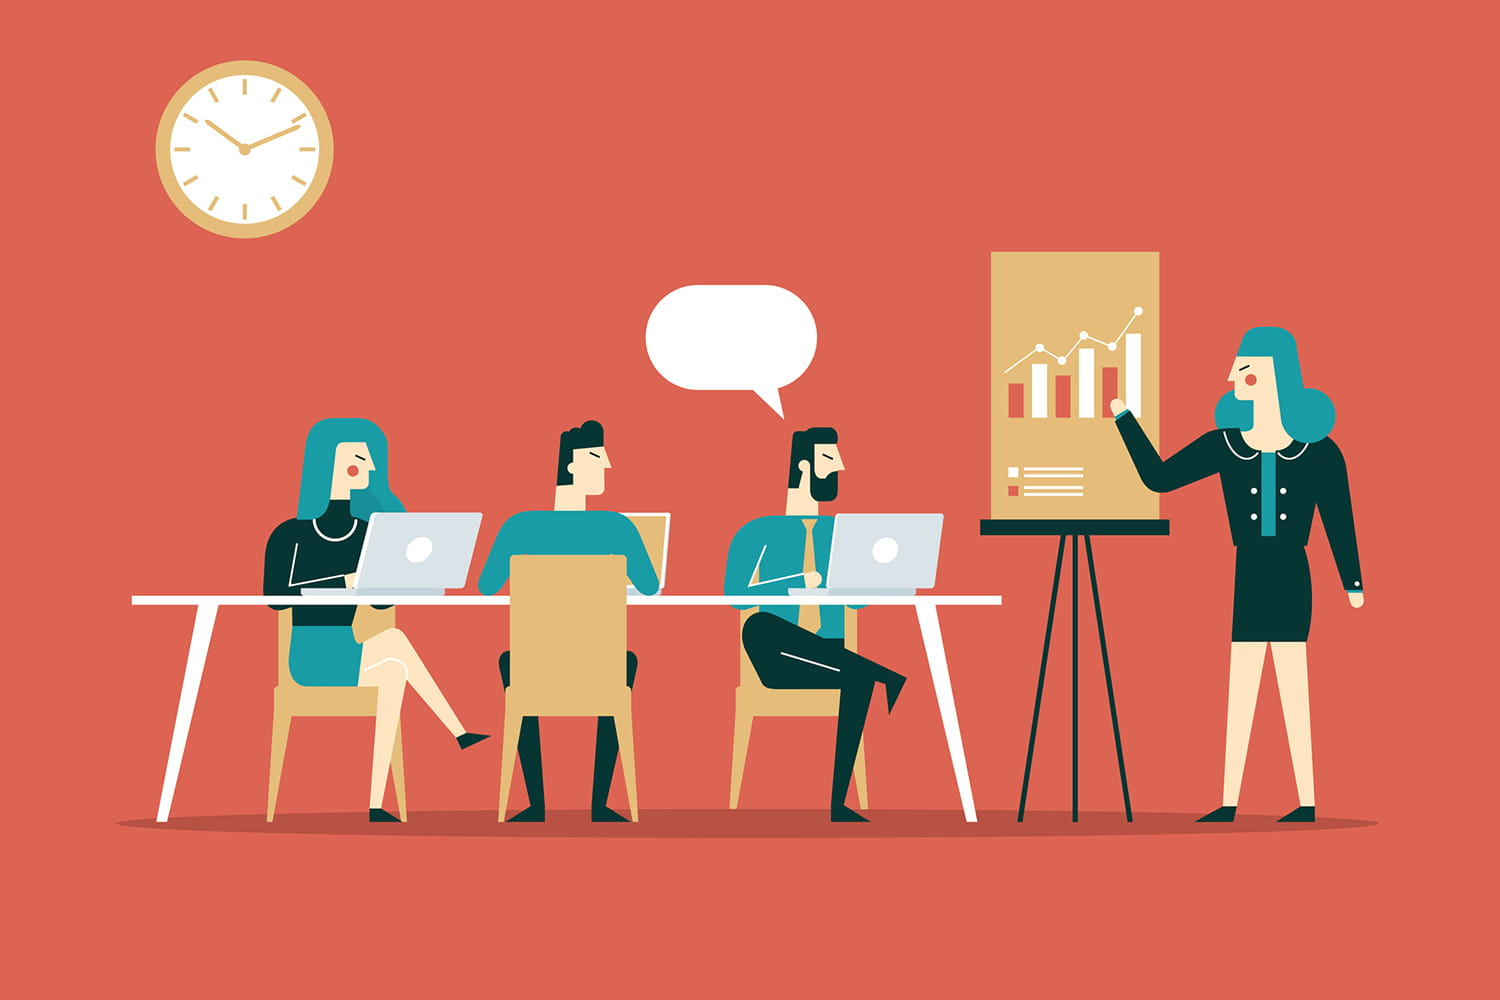 Five ways to improve your presenting skills